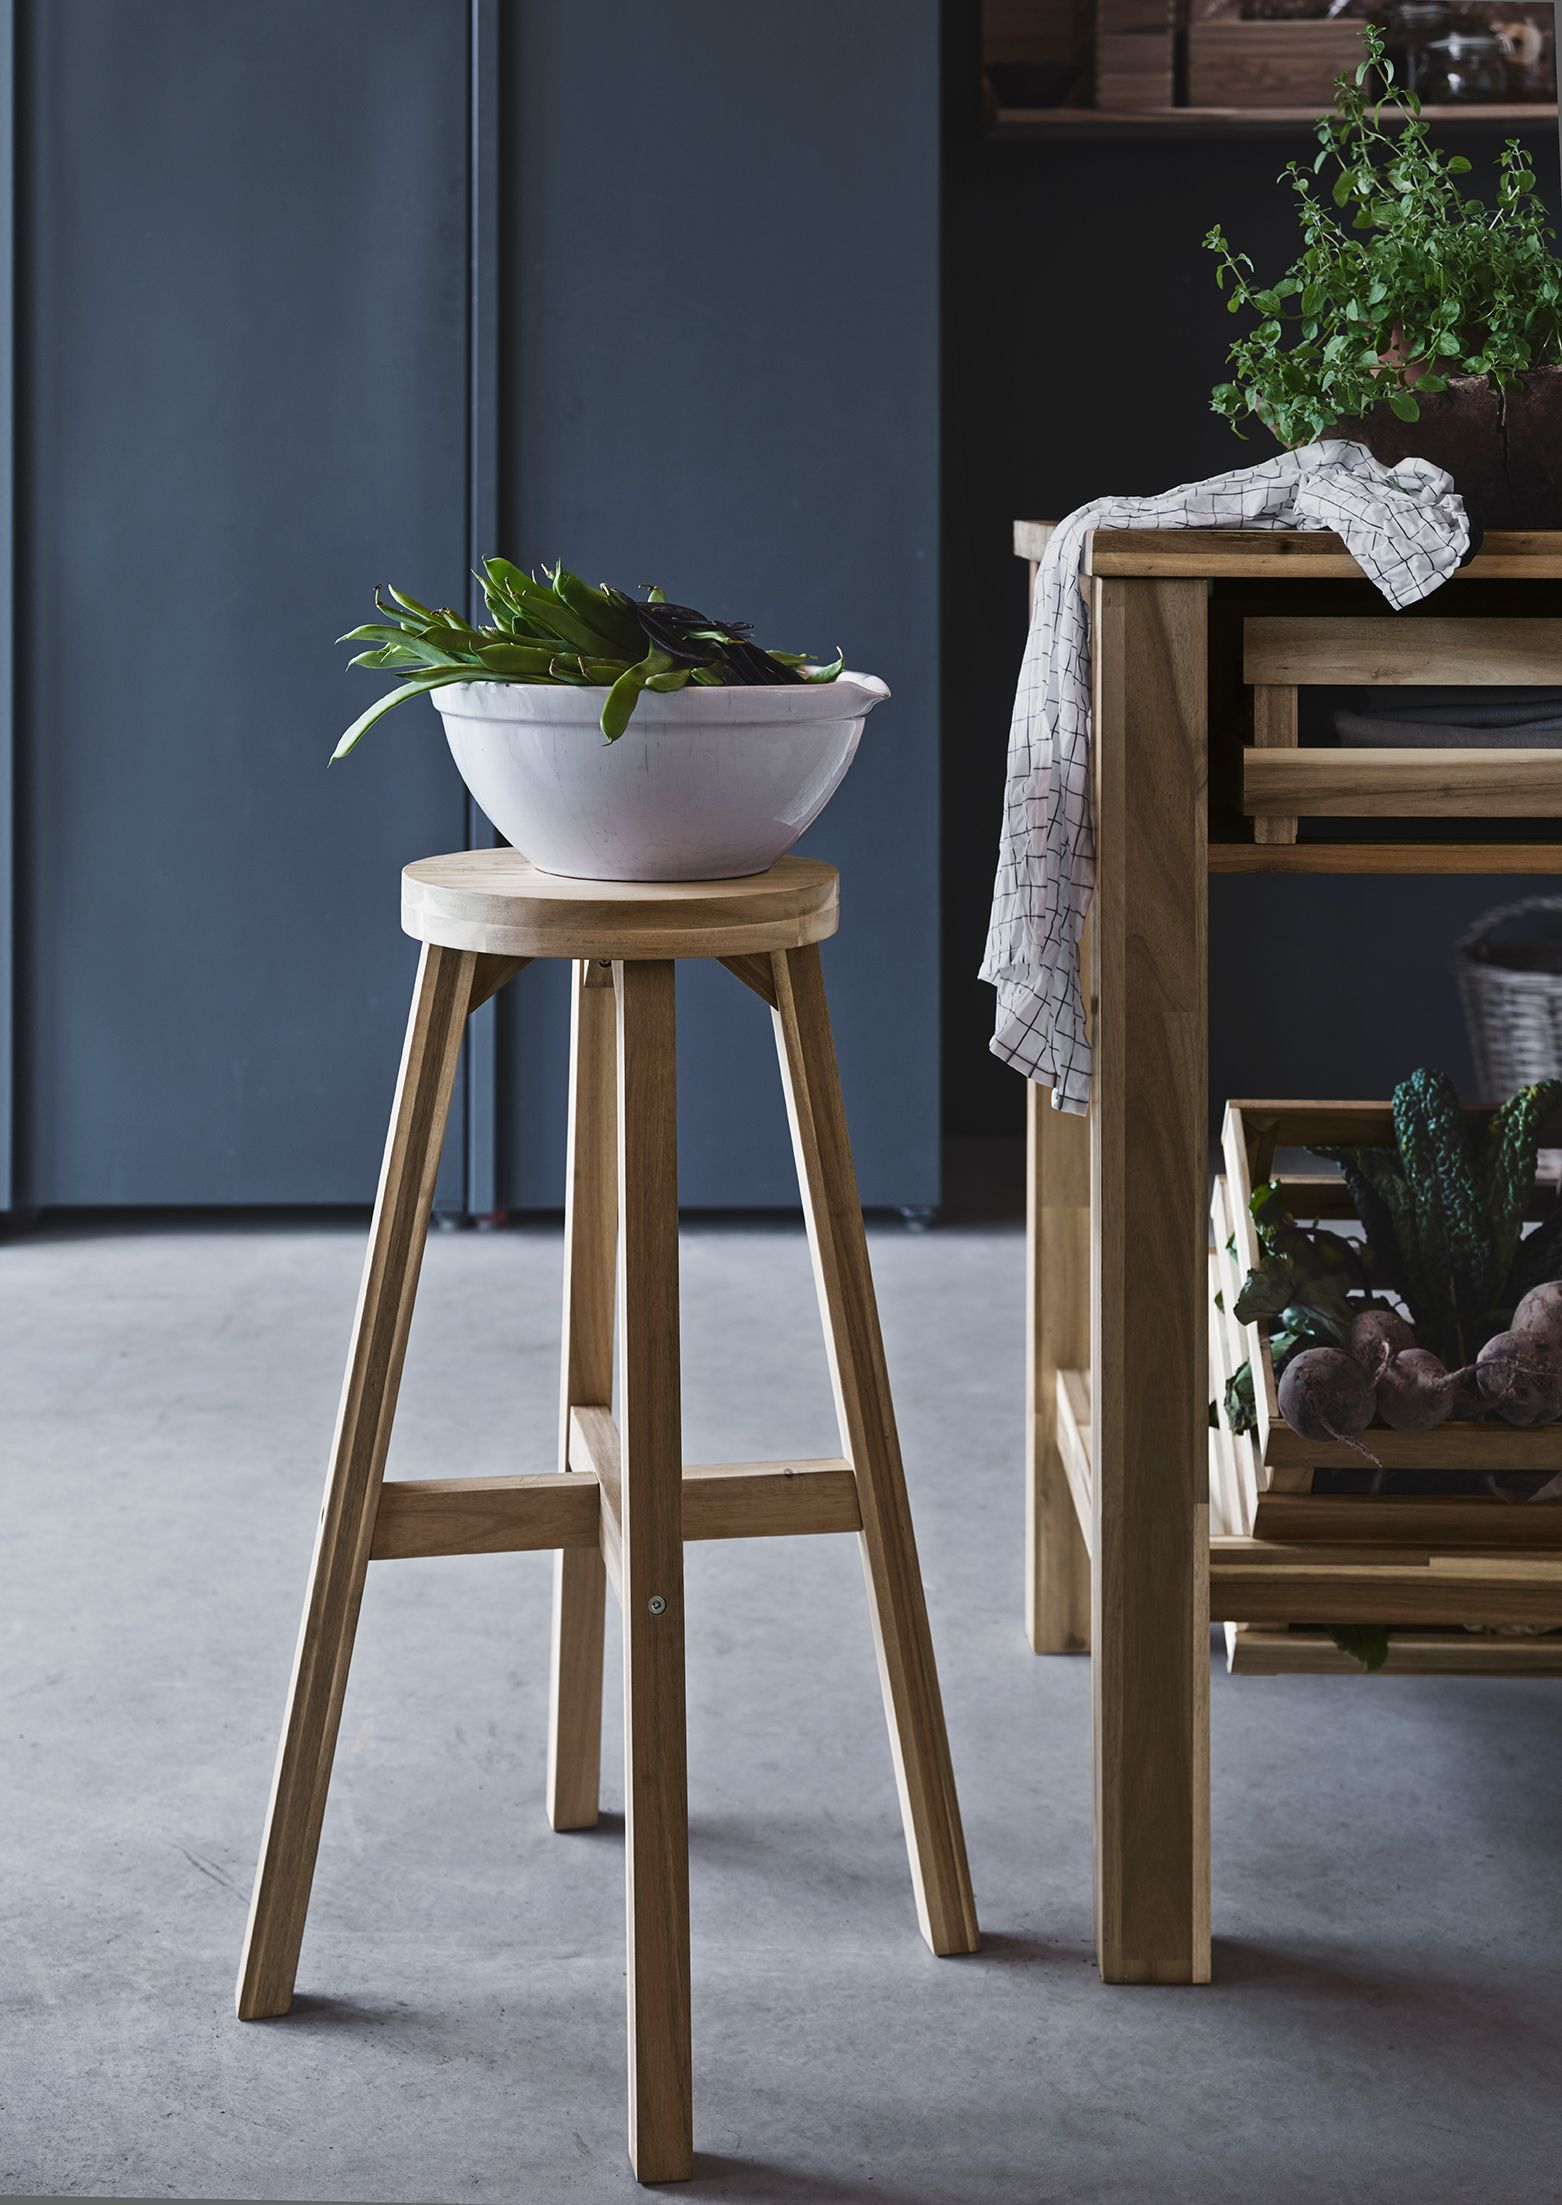 Ikea #SKOGSTA stool. | Greed | Pinterest